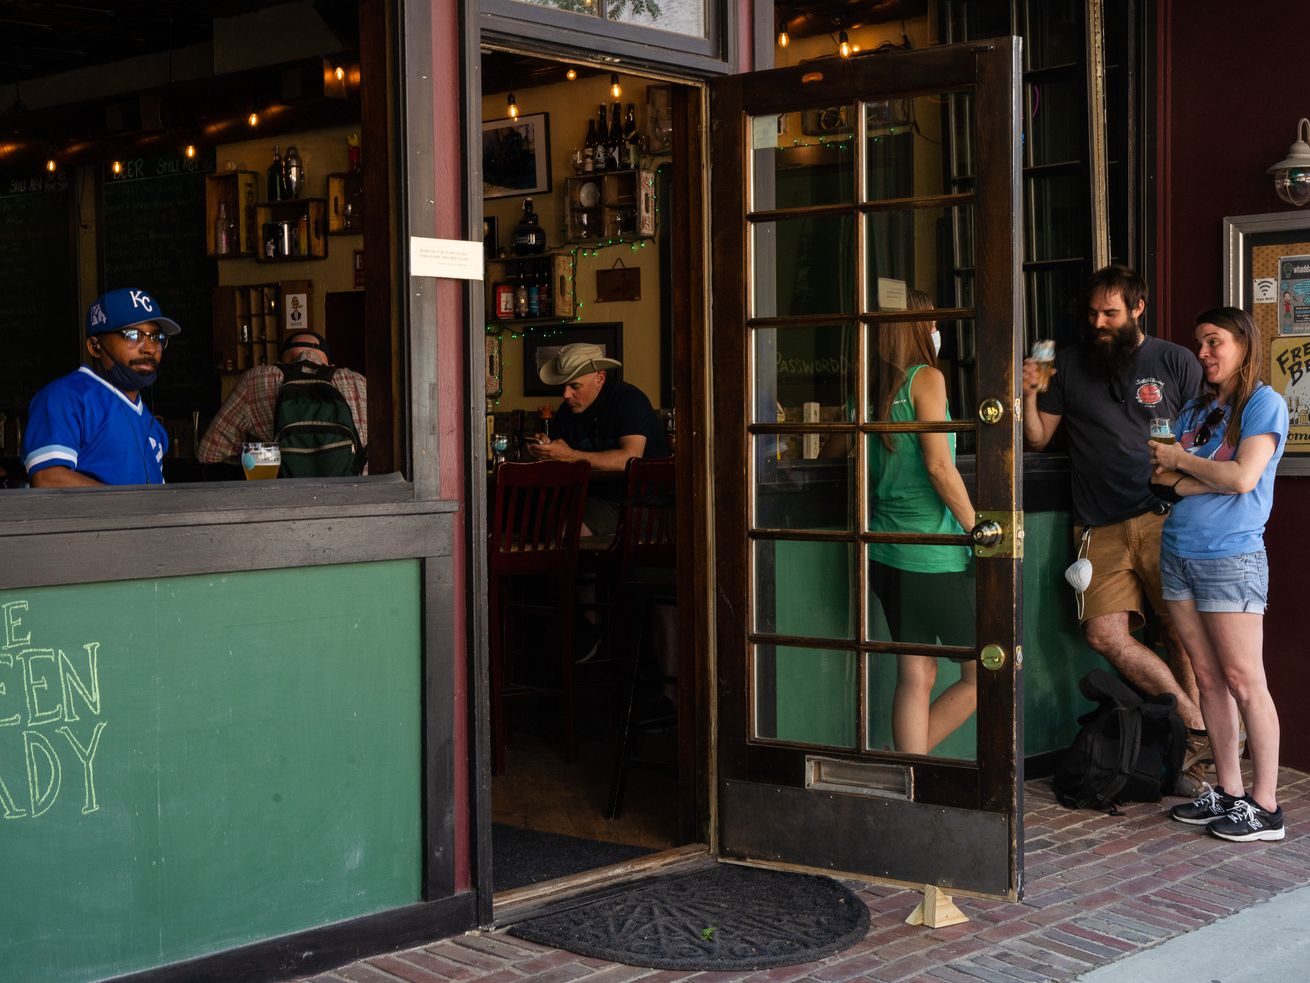 Chicago to ease capacity restrictions on restaurants, allow drinking inside bars